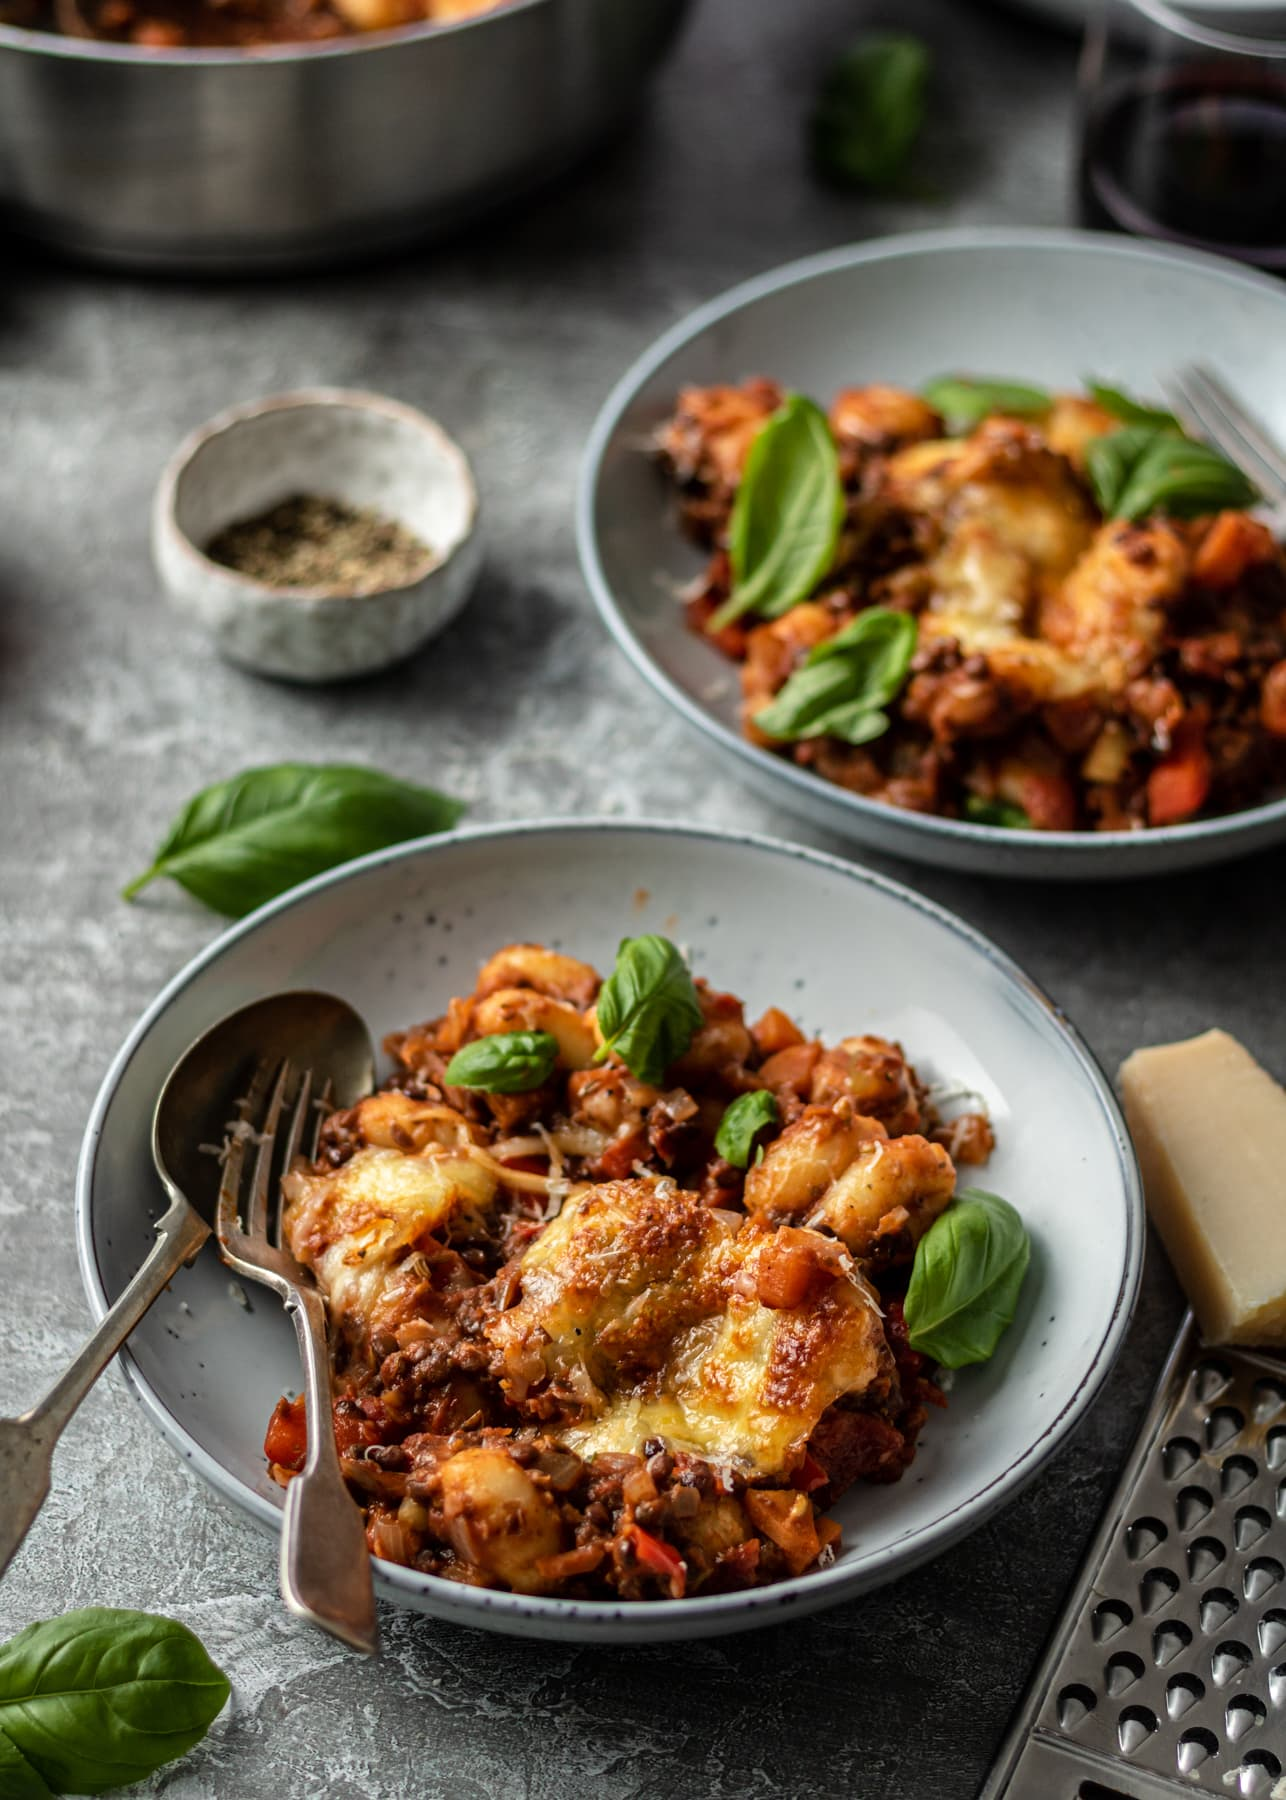 Gnocchi bolognese in bowls with spoons and forks